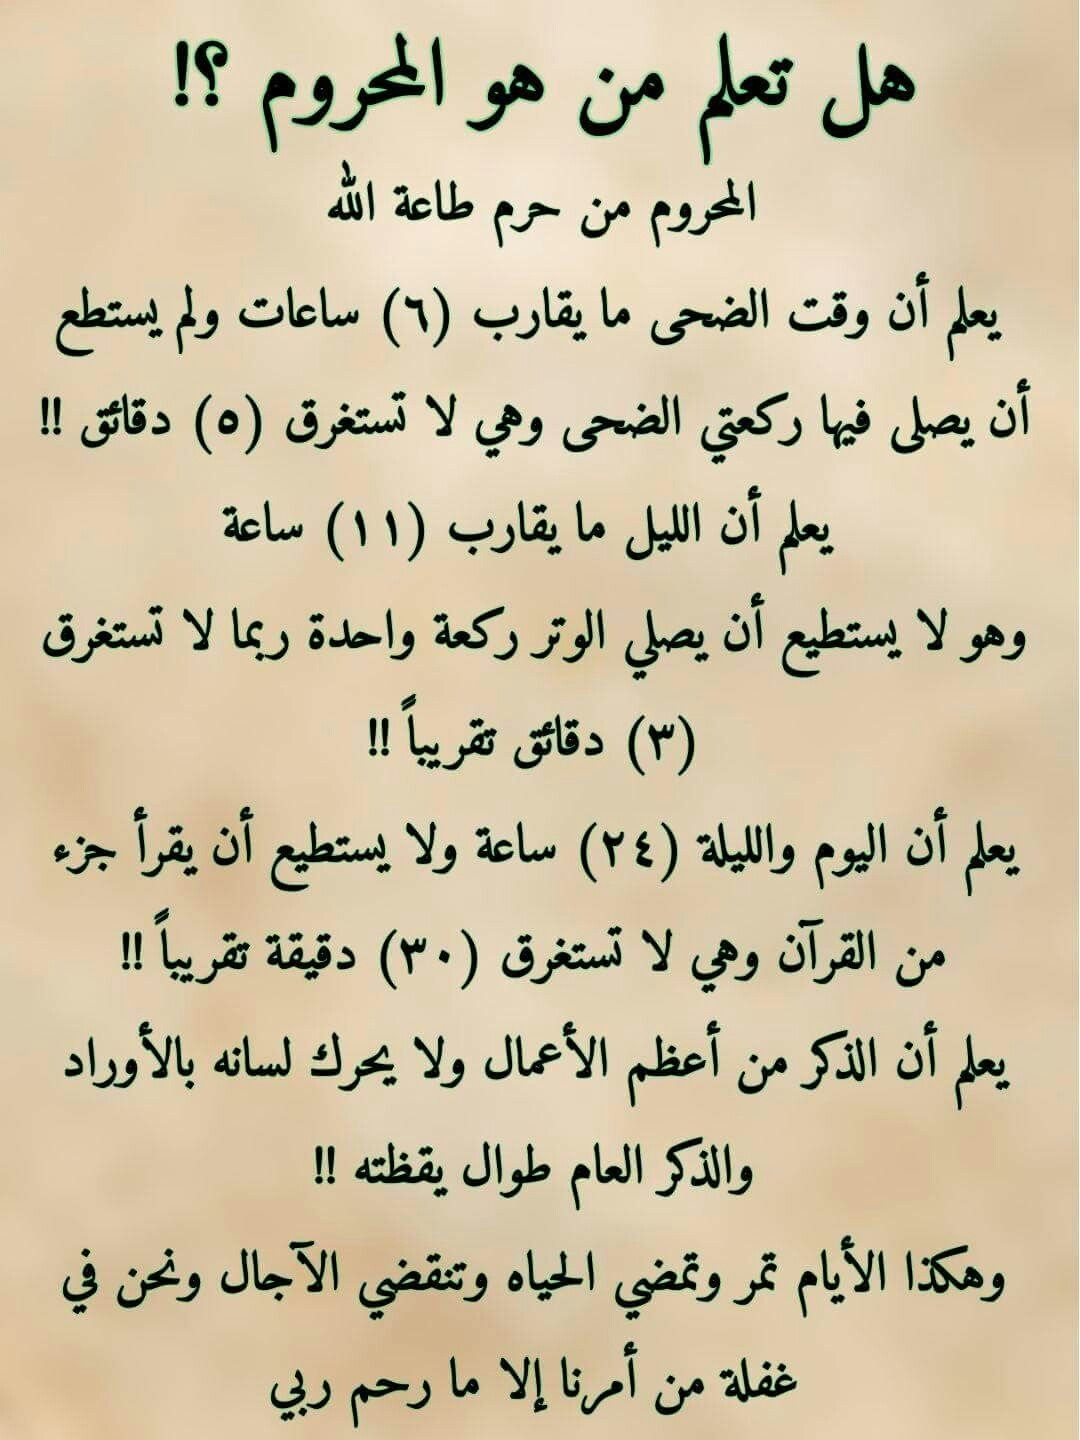 Pin By Sarah Salhi On ديني Islamic Inspirational Quotes Islam Beliefs Islamic Quotes